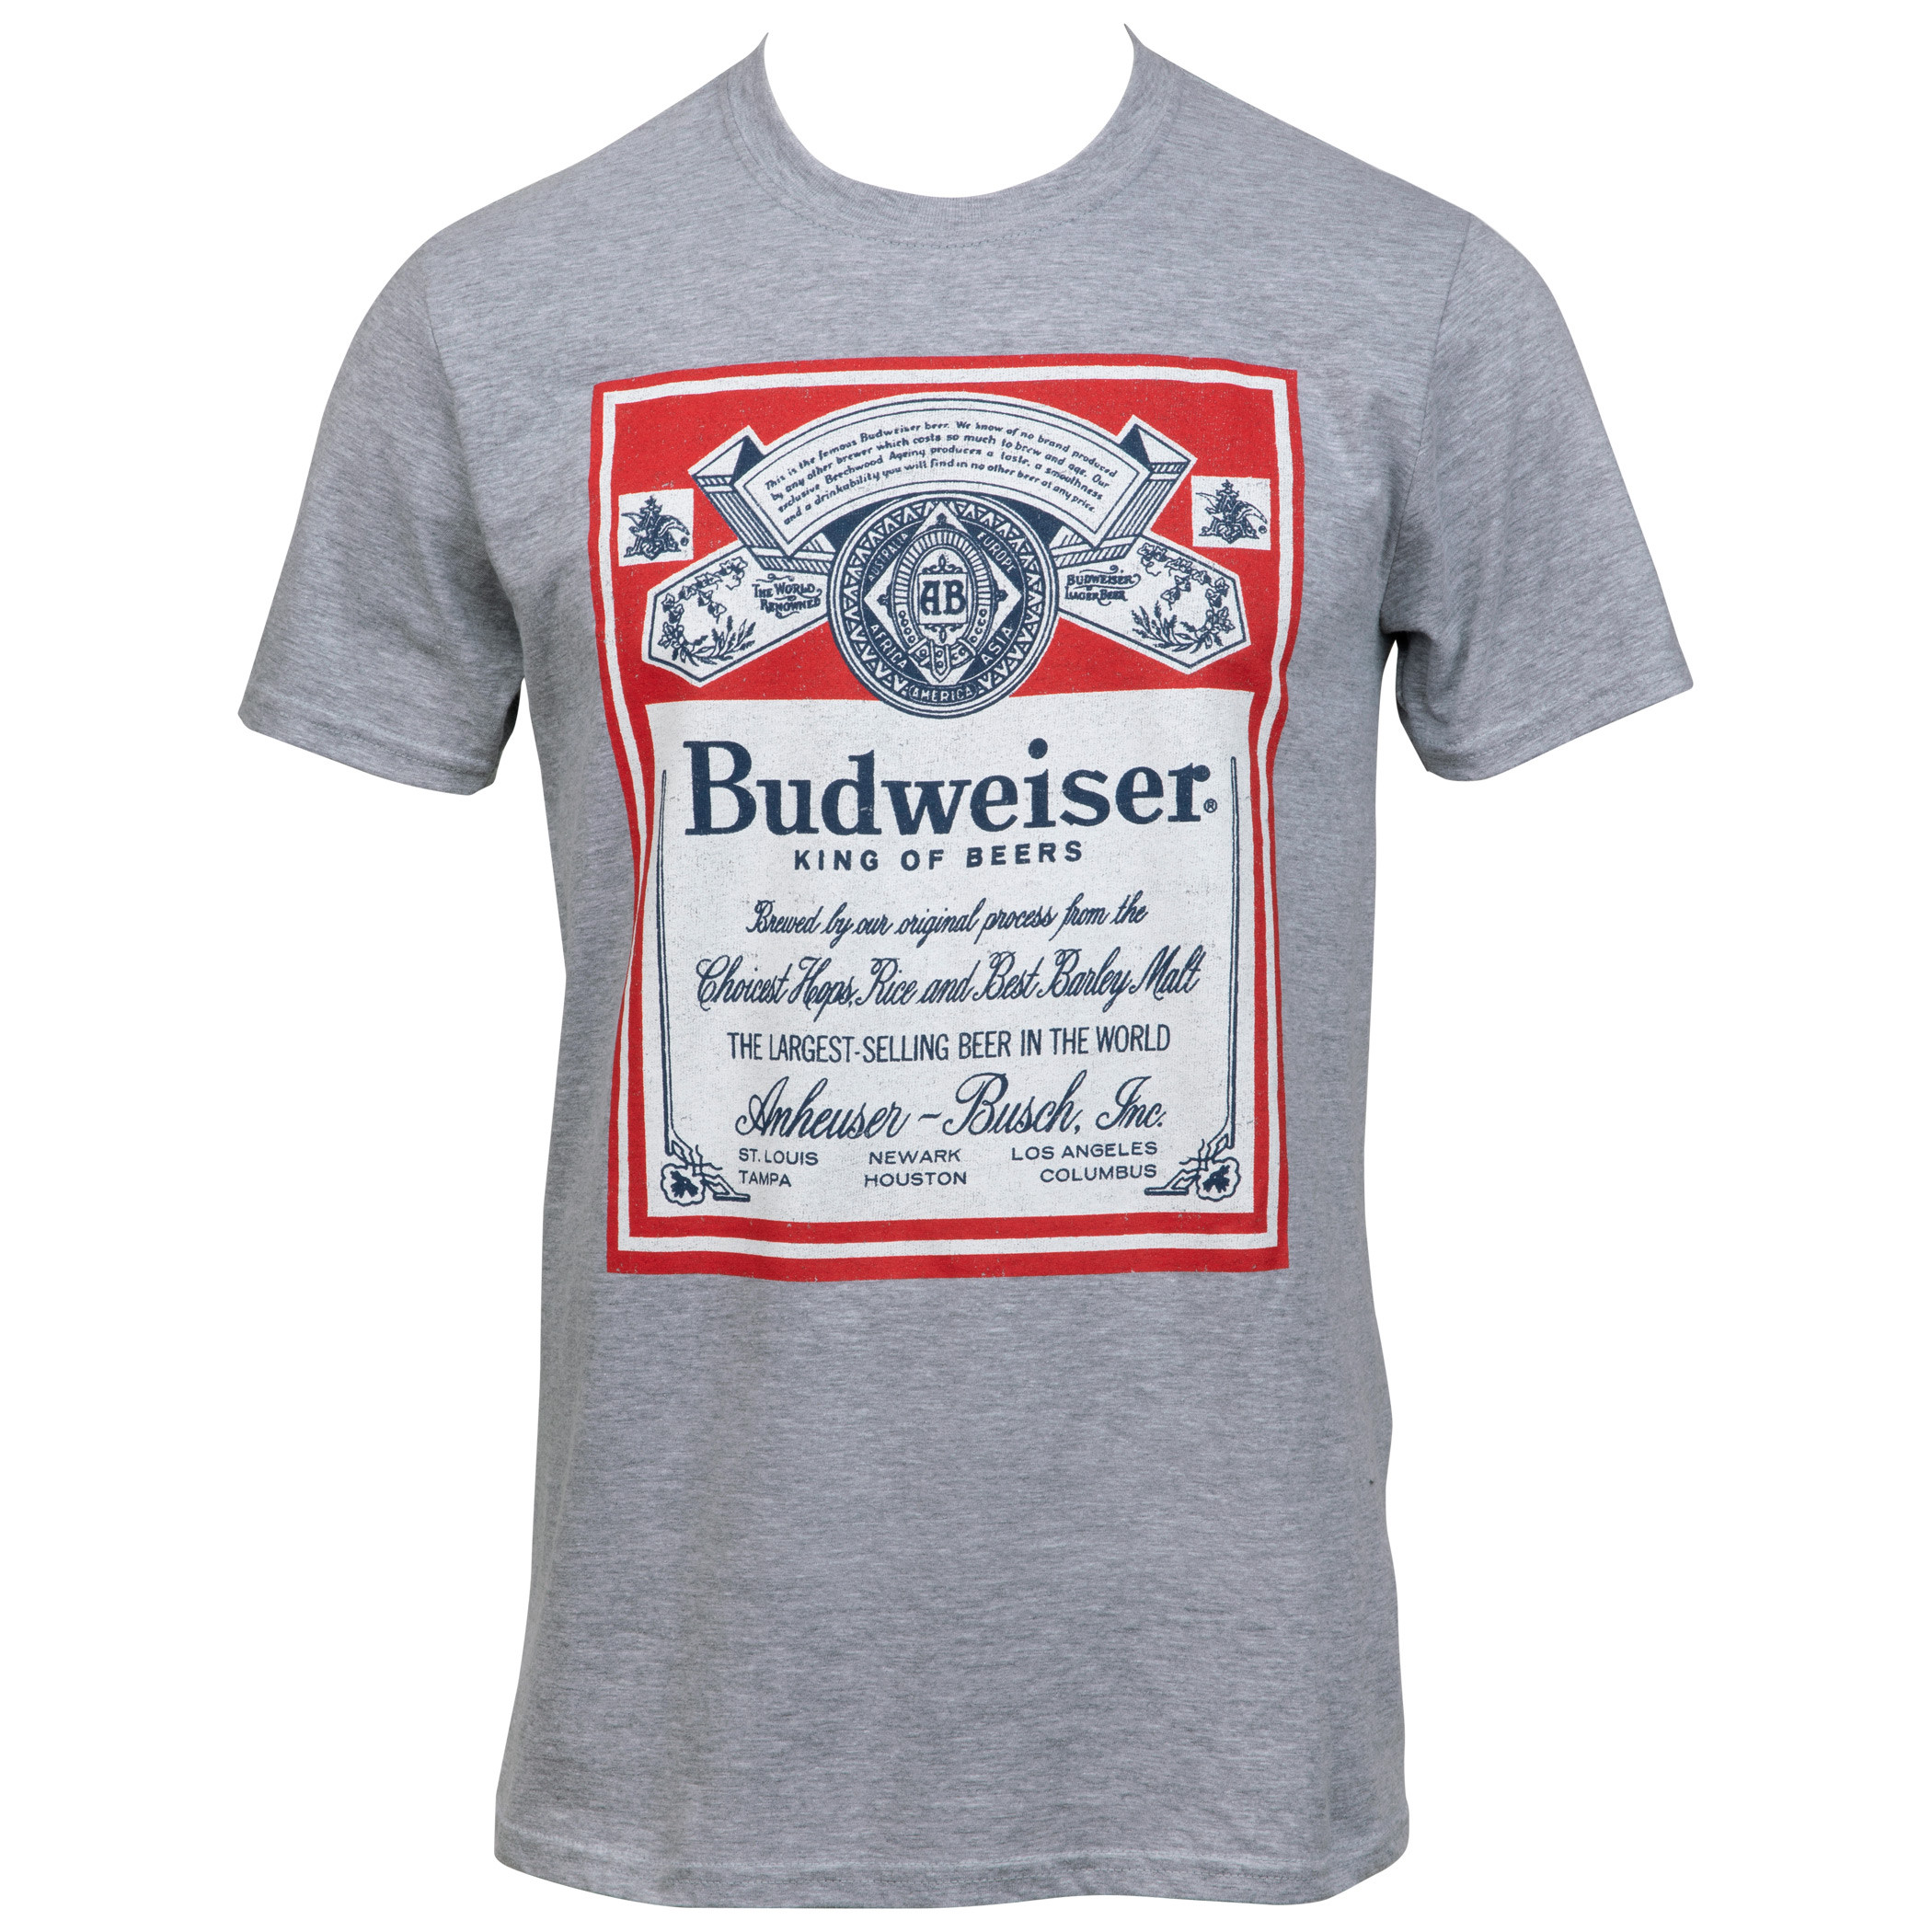 Budweiser King of Beers Label T-Shirt